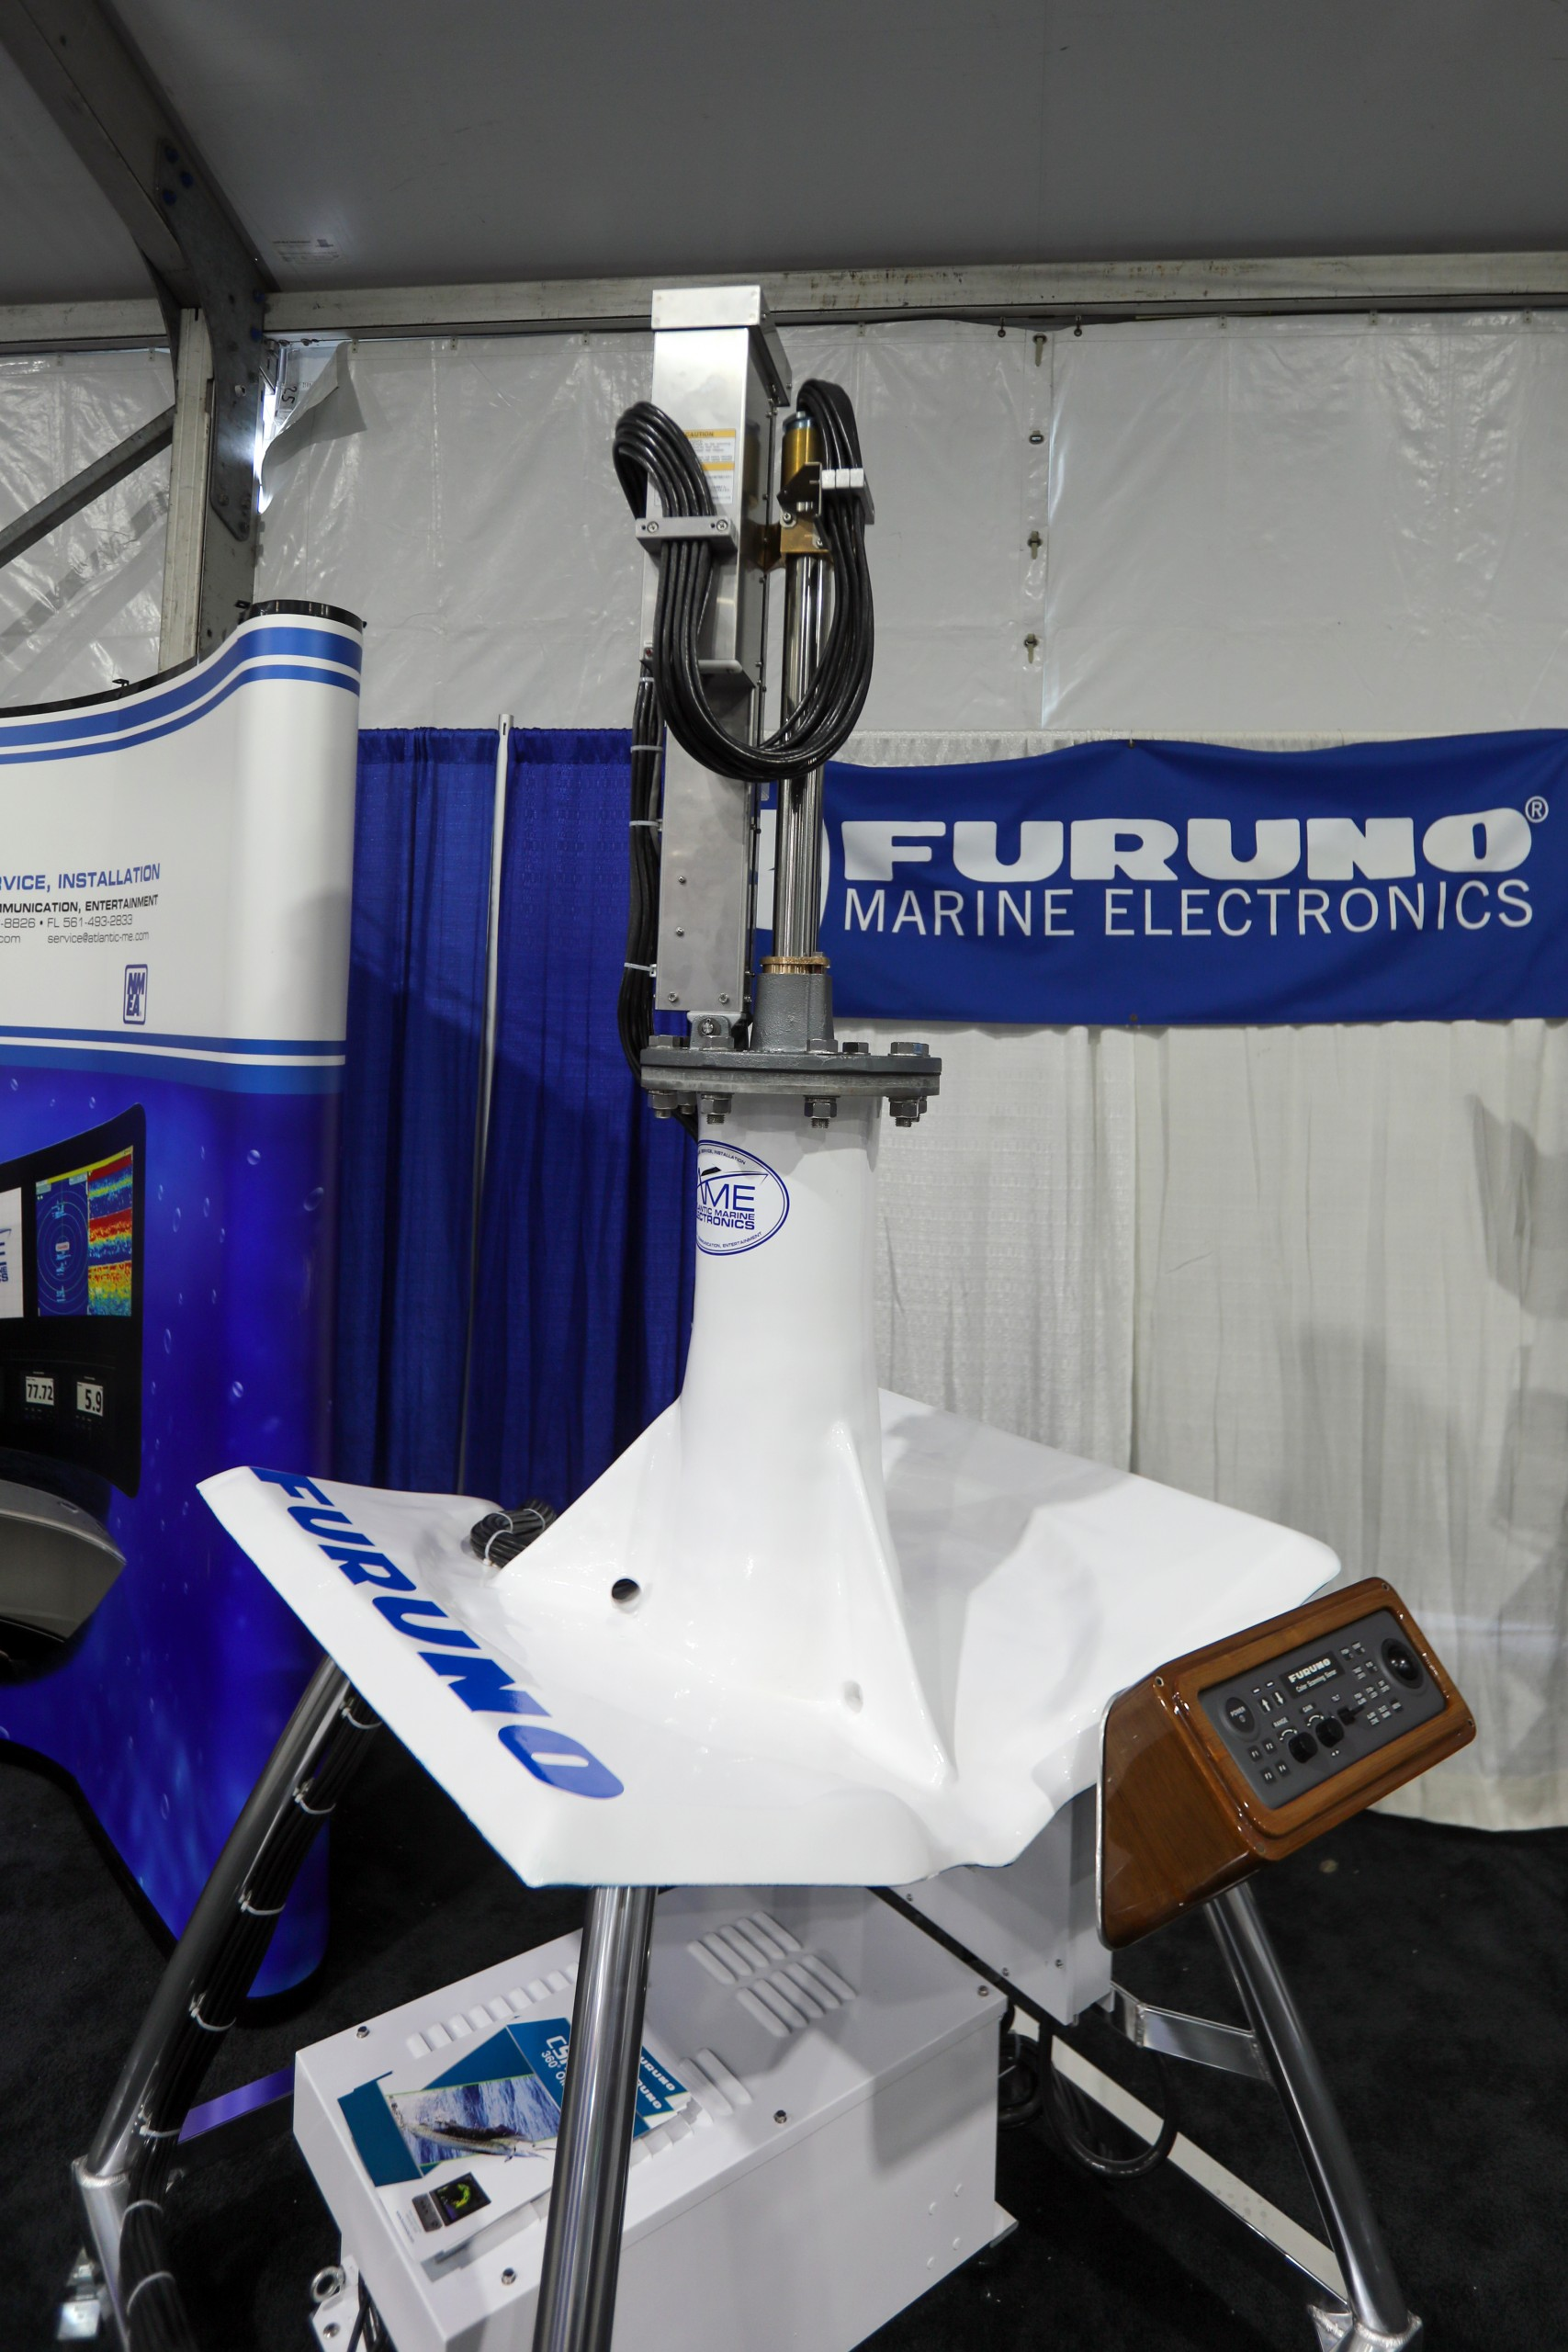 furuno marine electronics on display at the fort lauderdale boat show